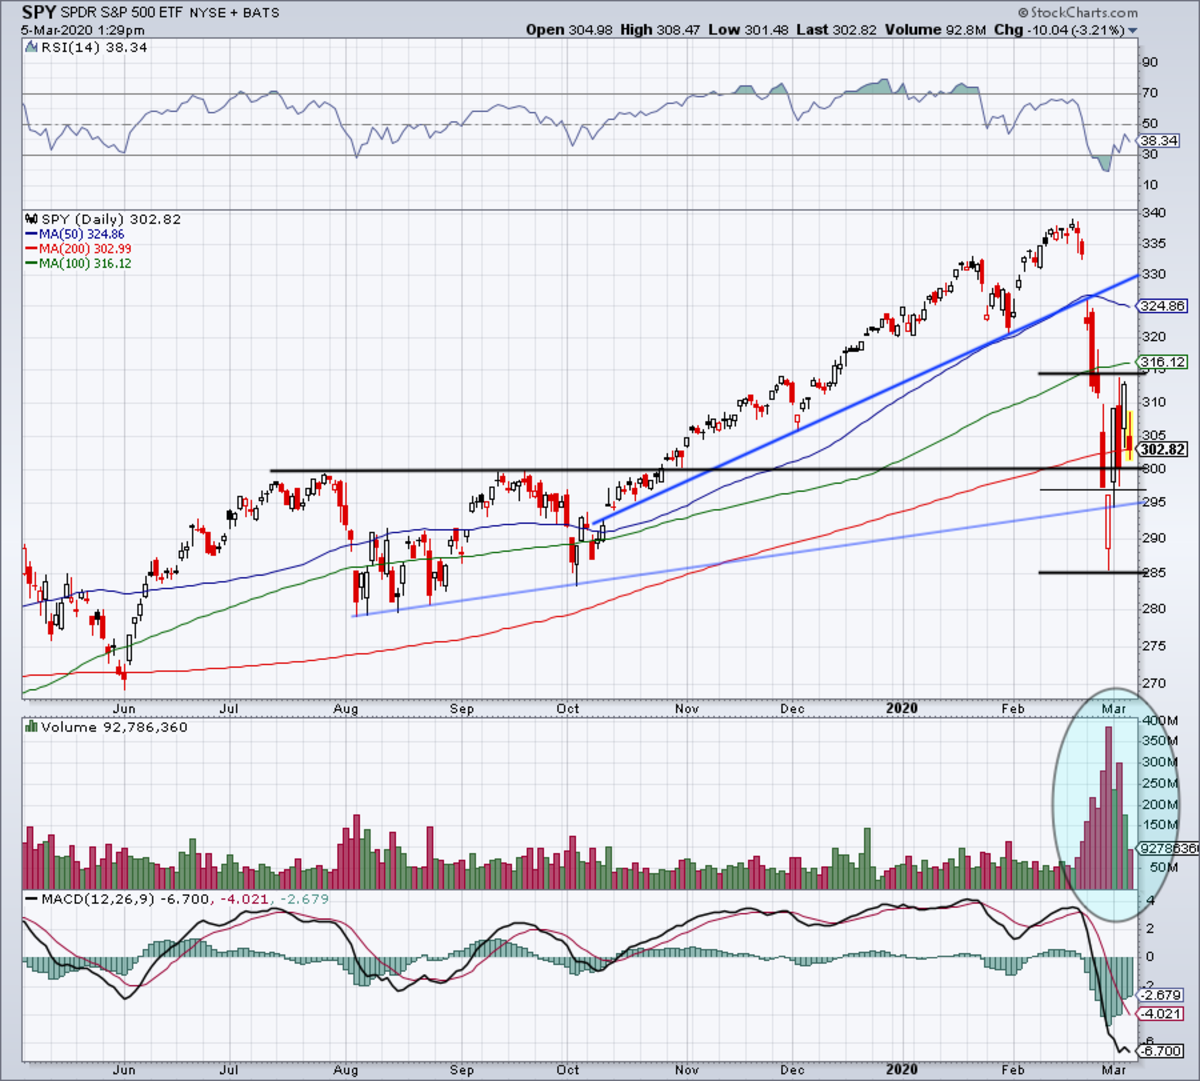 Daily chart of the SPY ETF.